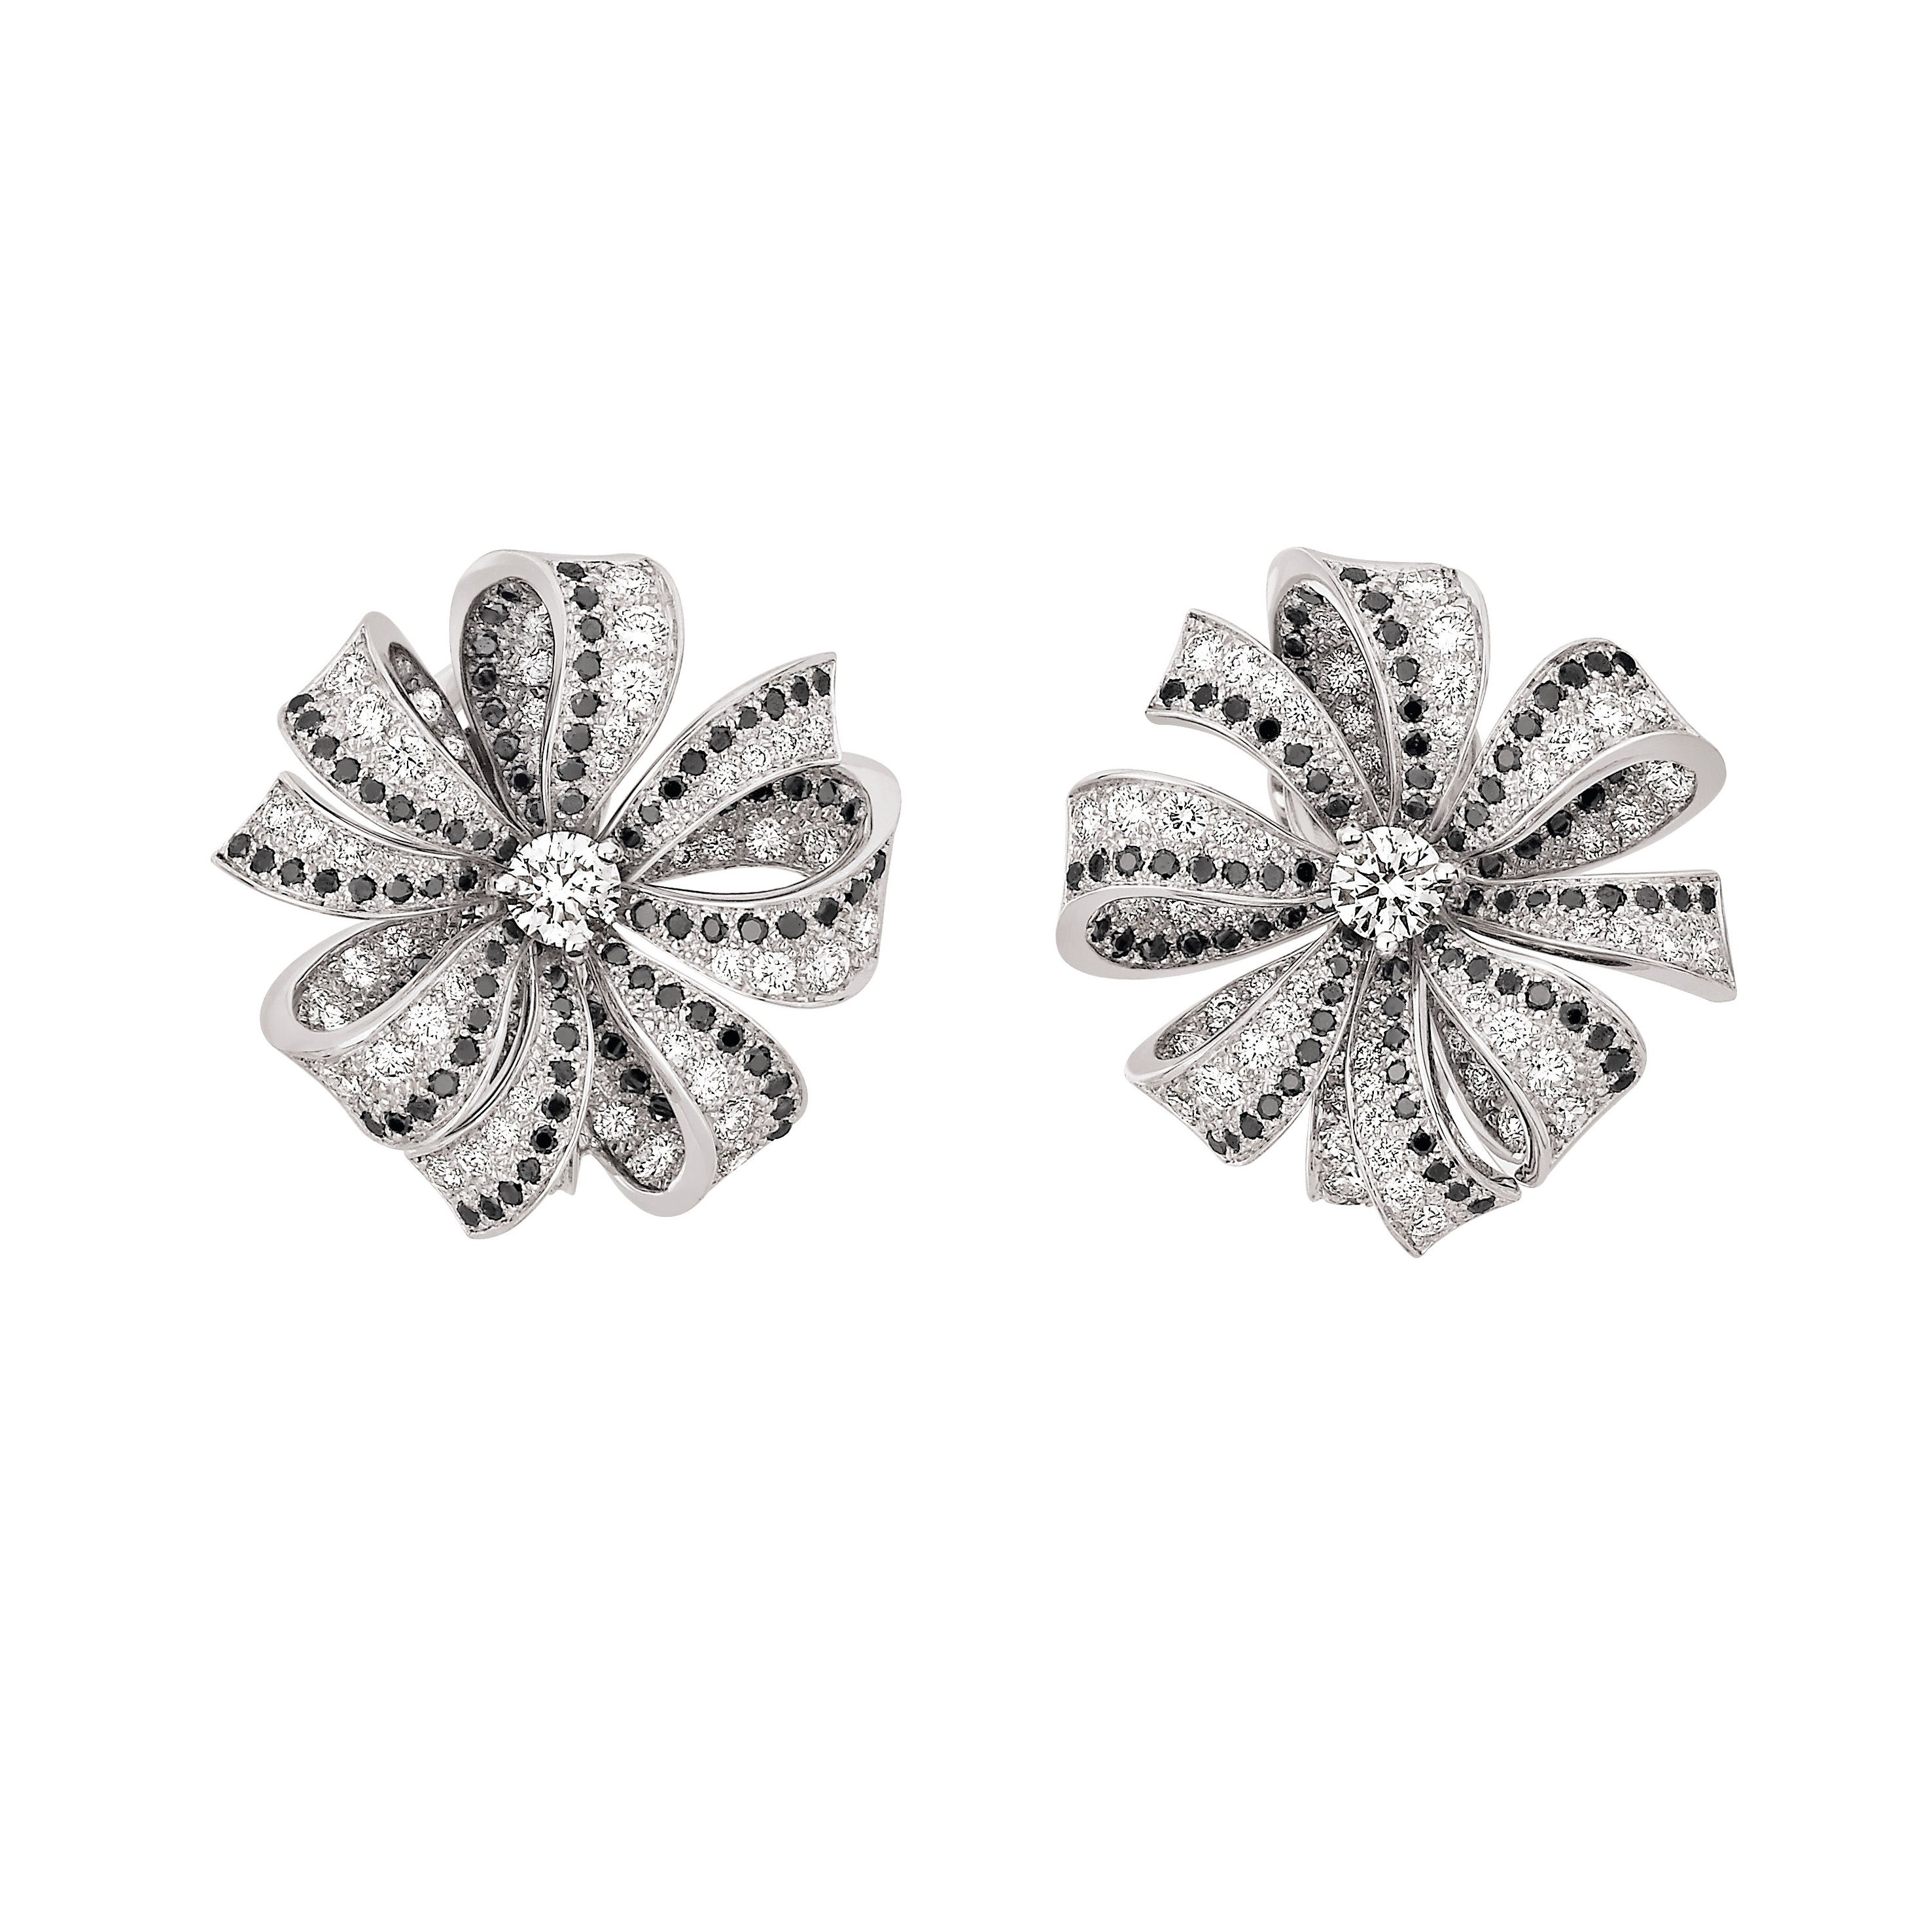 Chanel White Gold Earrings Set With And Black Brilliant Cut Diamonds Camélia Brodé Collection